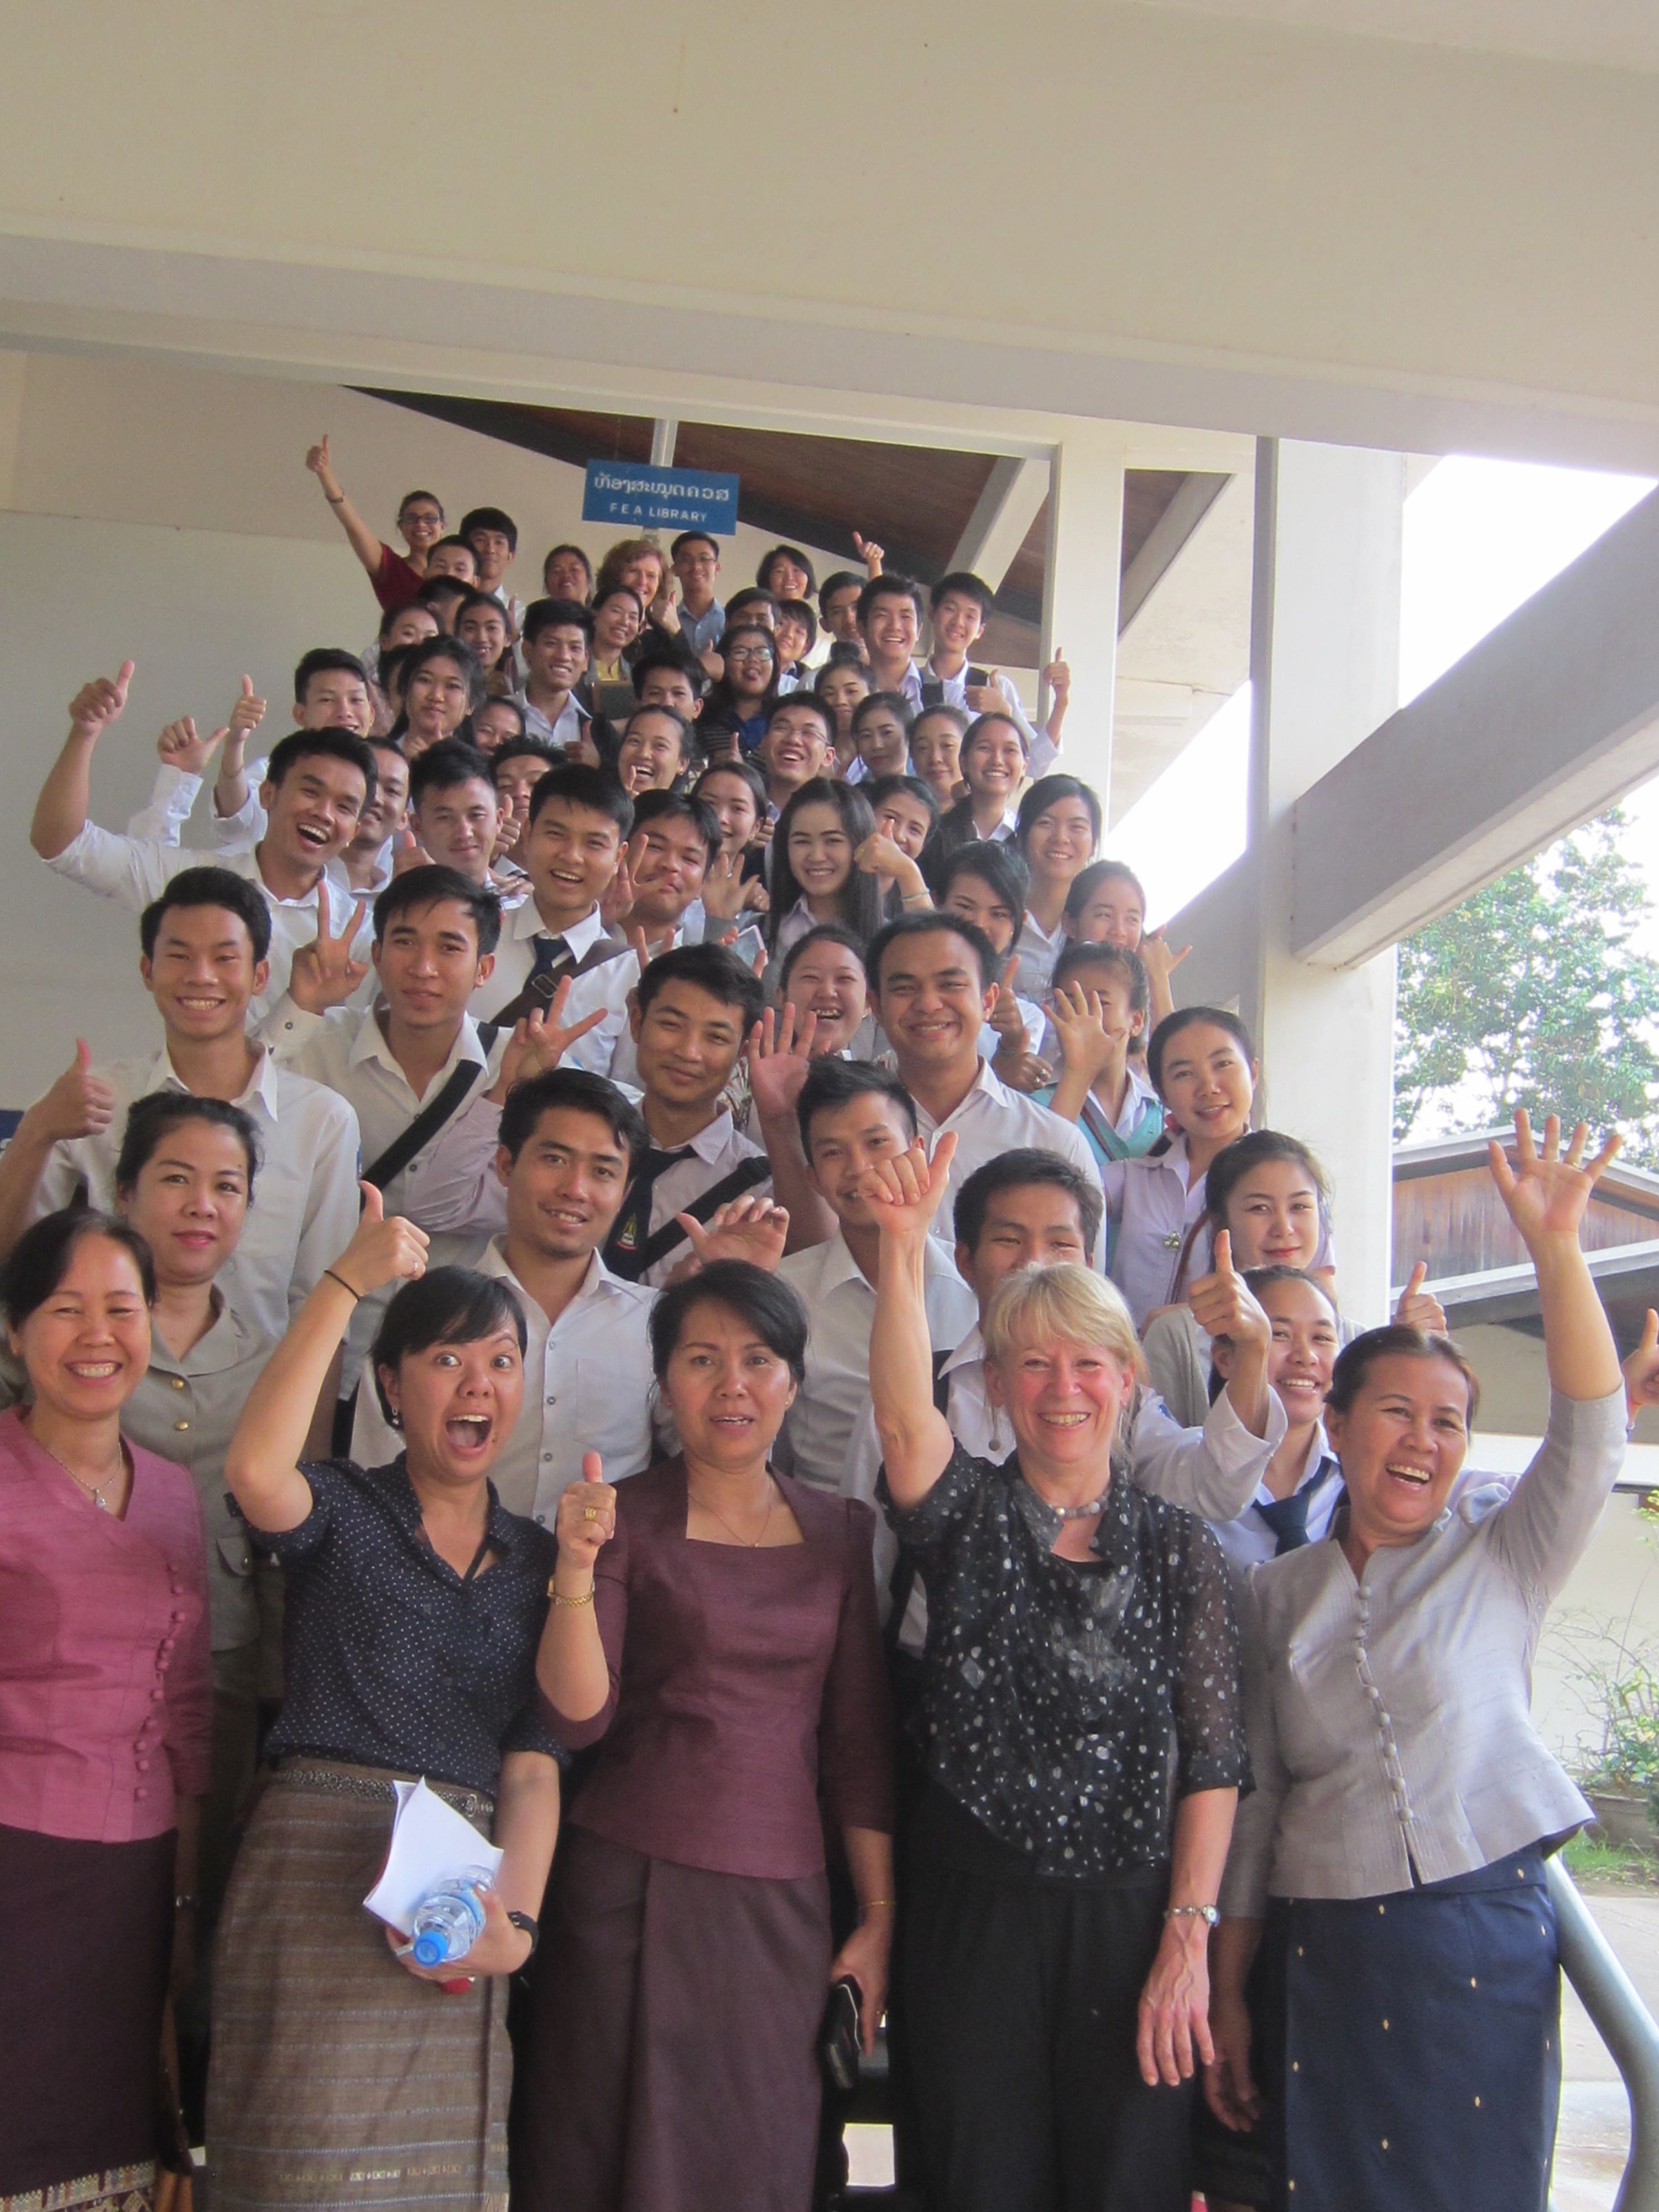 Science and engineering students and faculty from National University